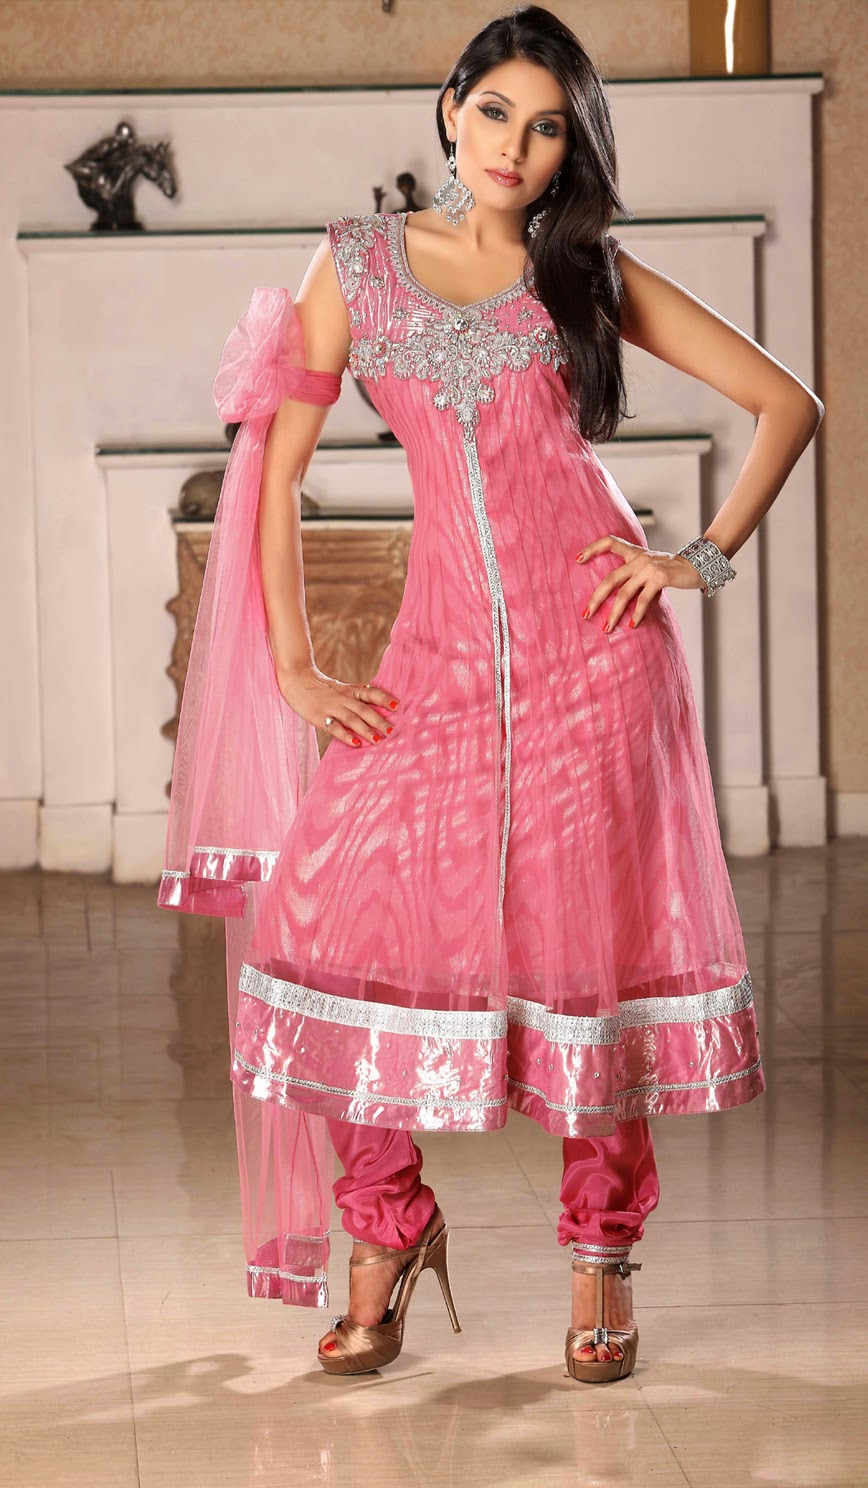 Latest Designs Of Party Wear Punjabi Suits - Holiday Dresses